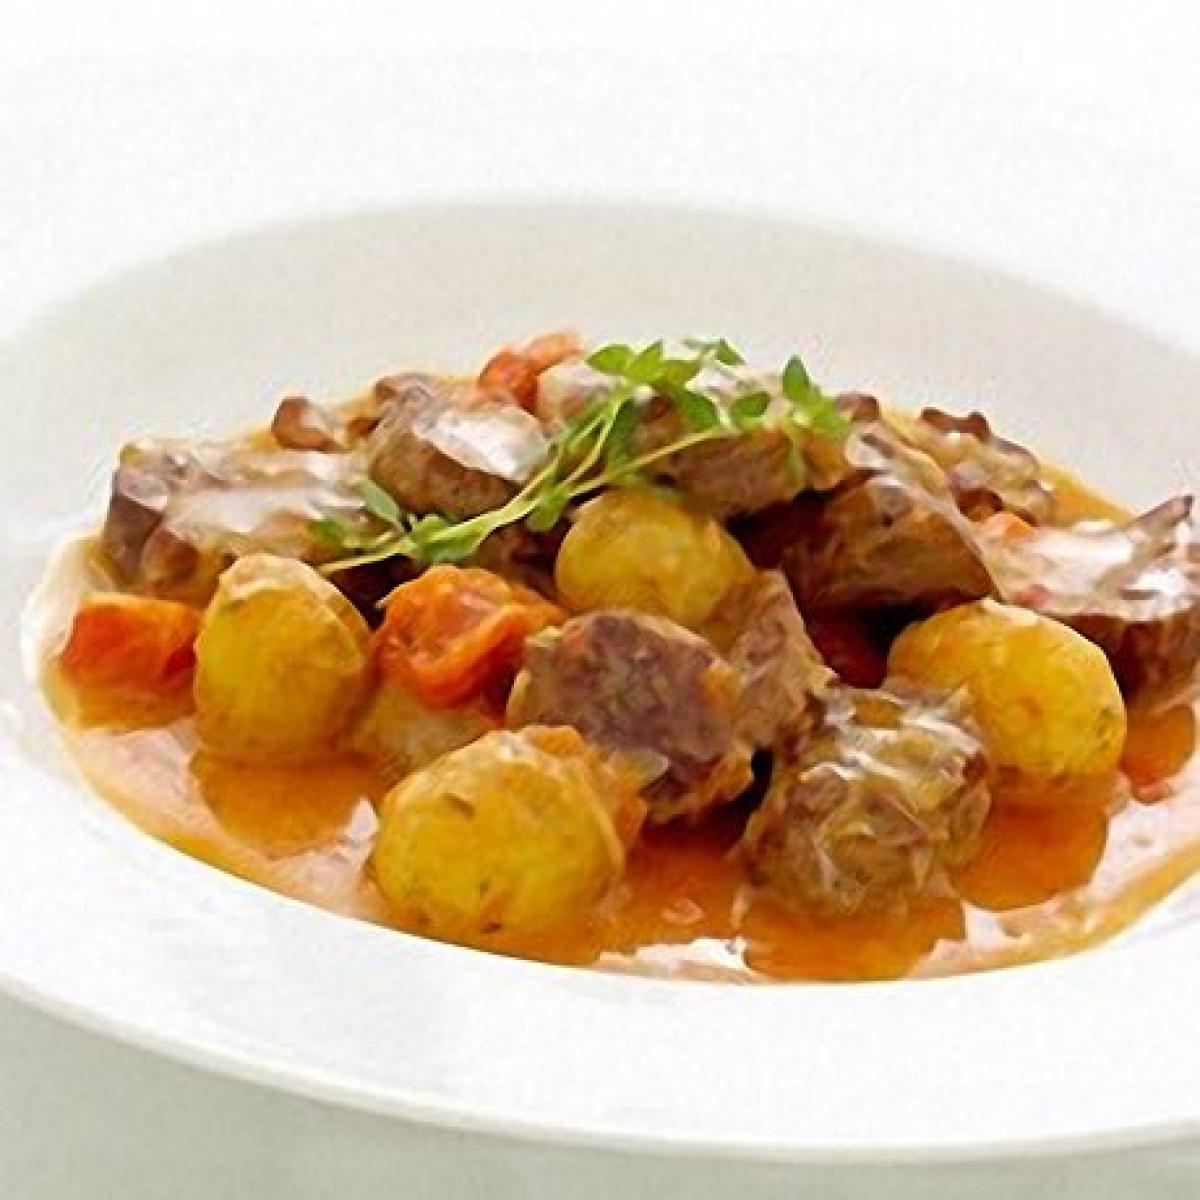 A picture of Delia's Ragout of Lamb recipe